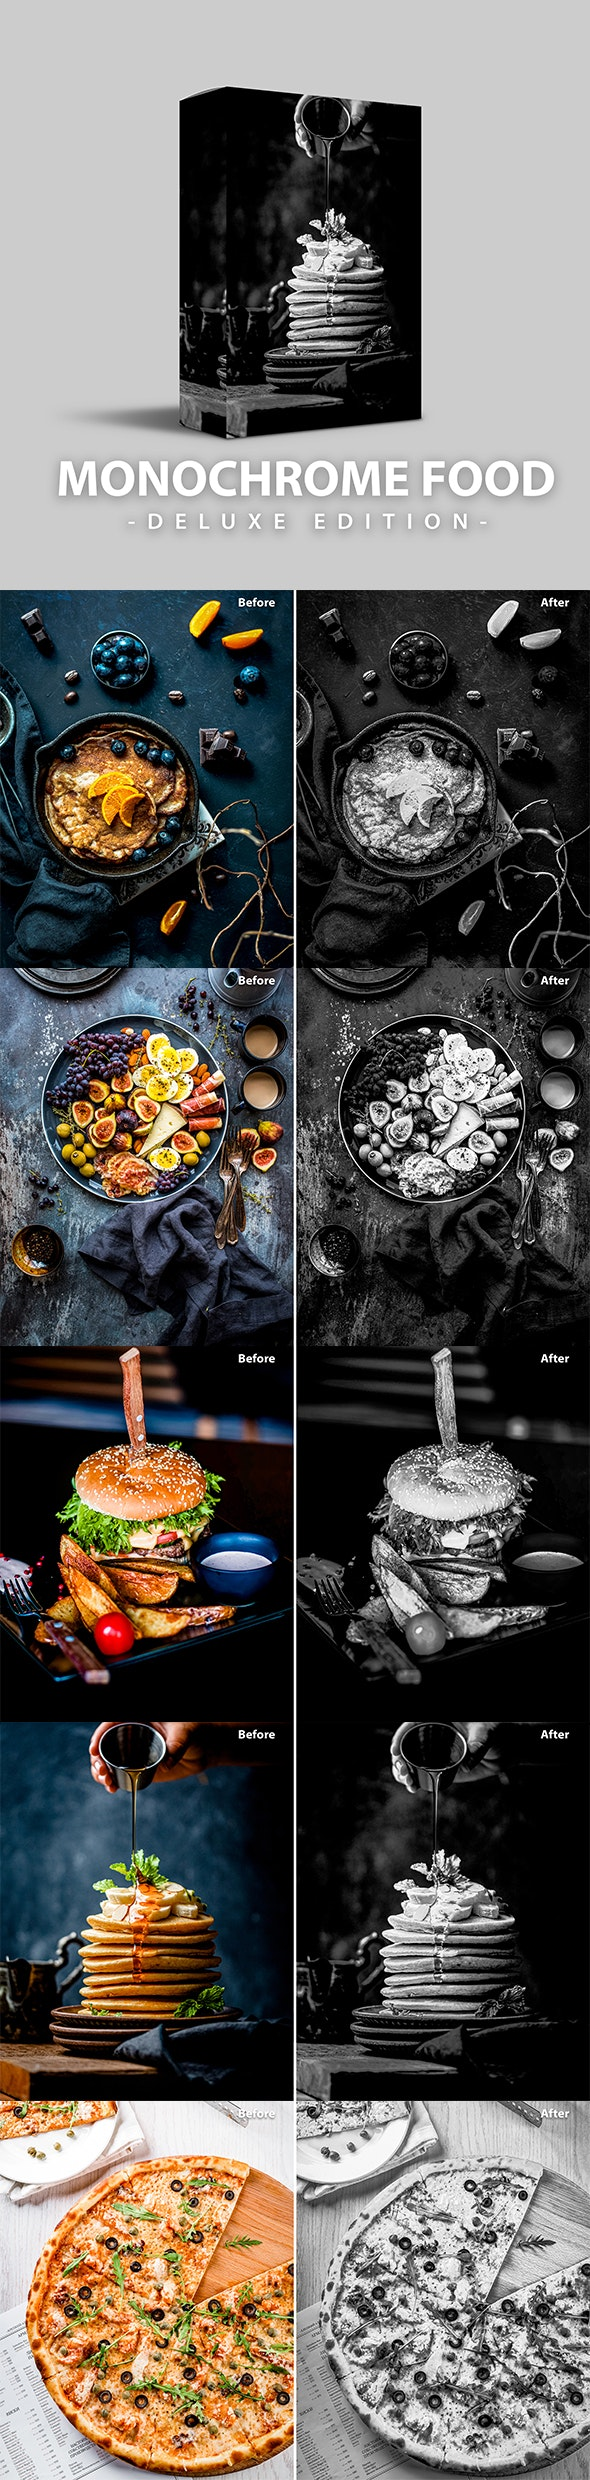 Monochrome Food | Deluxe Edition for Mobile and PC - Black and white Lightroom Presets